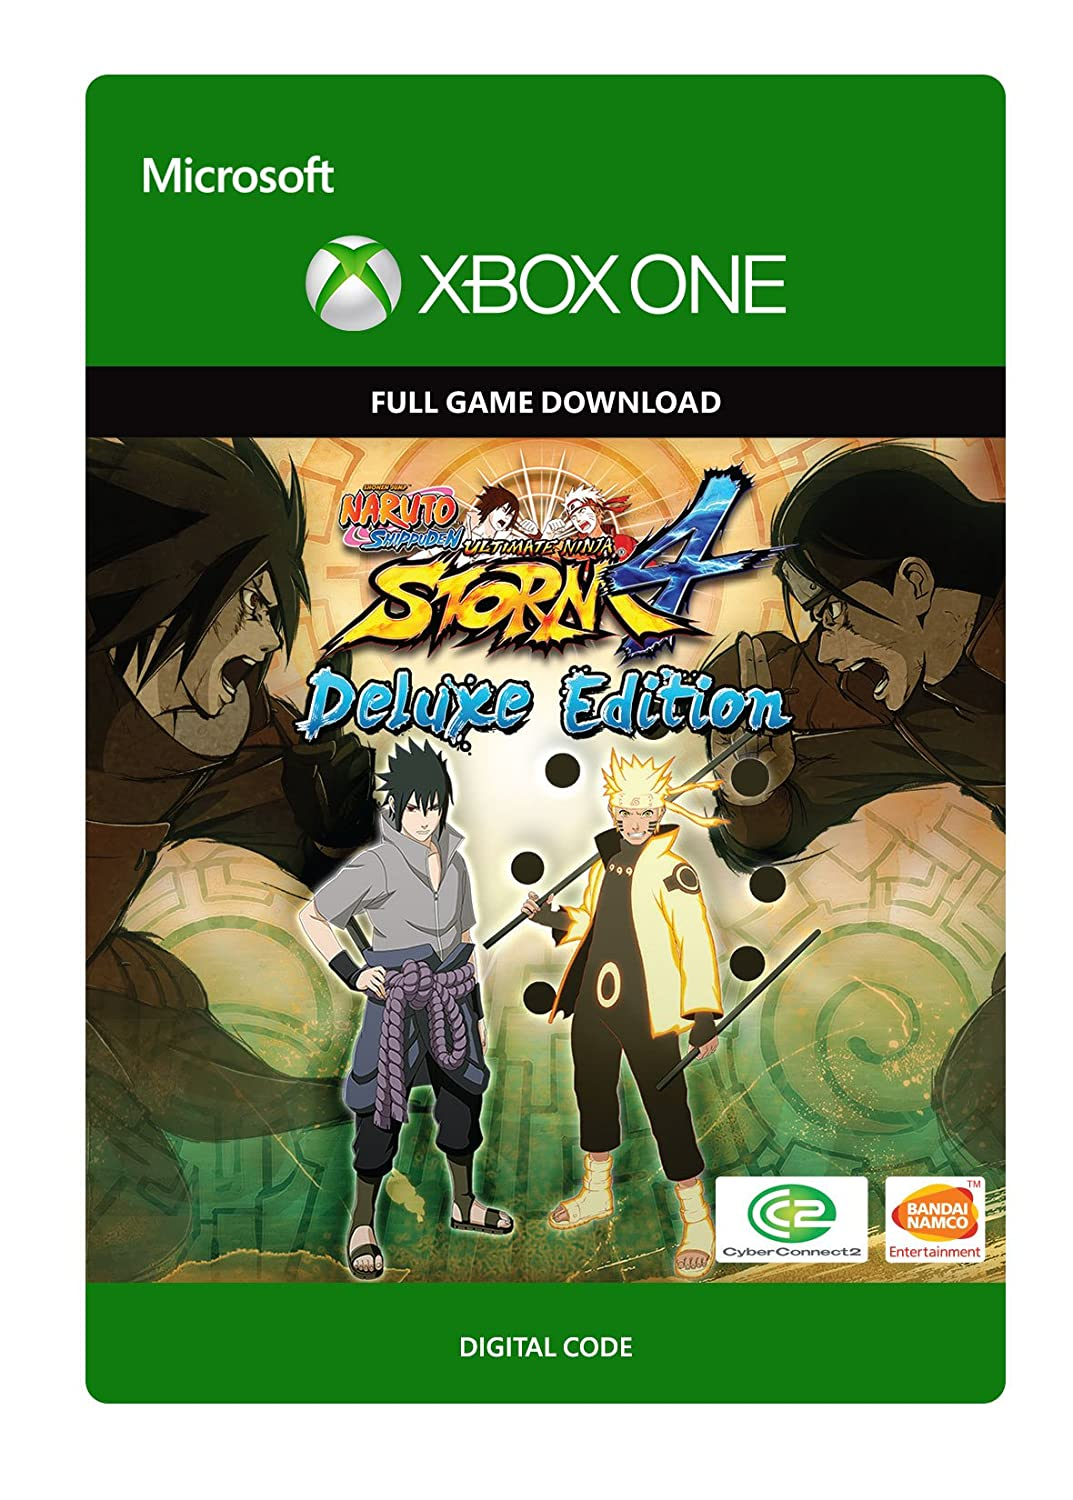 Naruto Ultimate Ninja Storm 4 - Deluxe Edition - Xbox One Digital Code